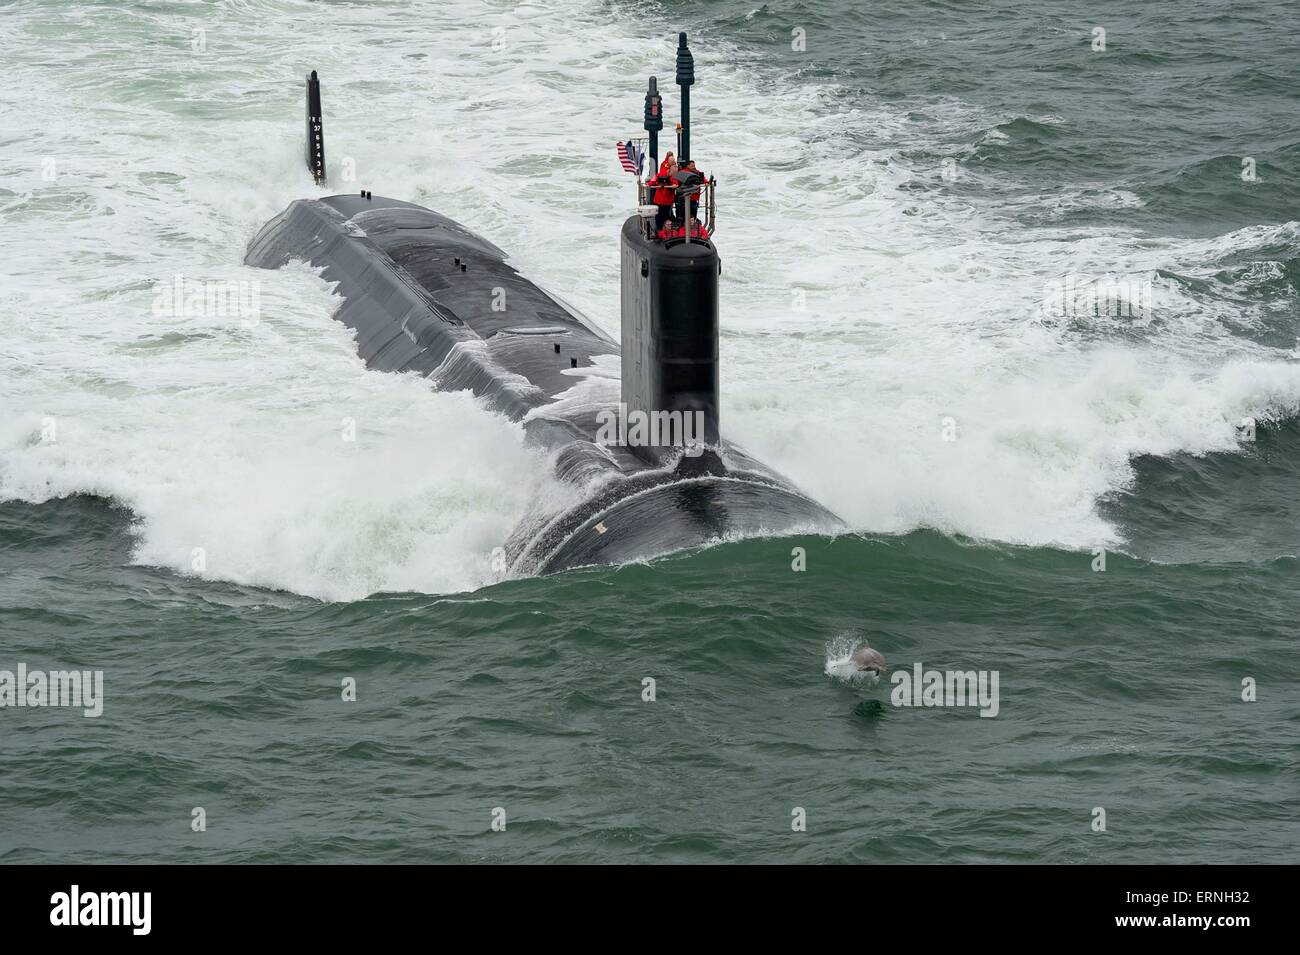 A dolphin jumps in front of the Virginia-class attack submarine USS John Warner as the boat conducts sea trials - Stock Image